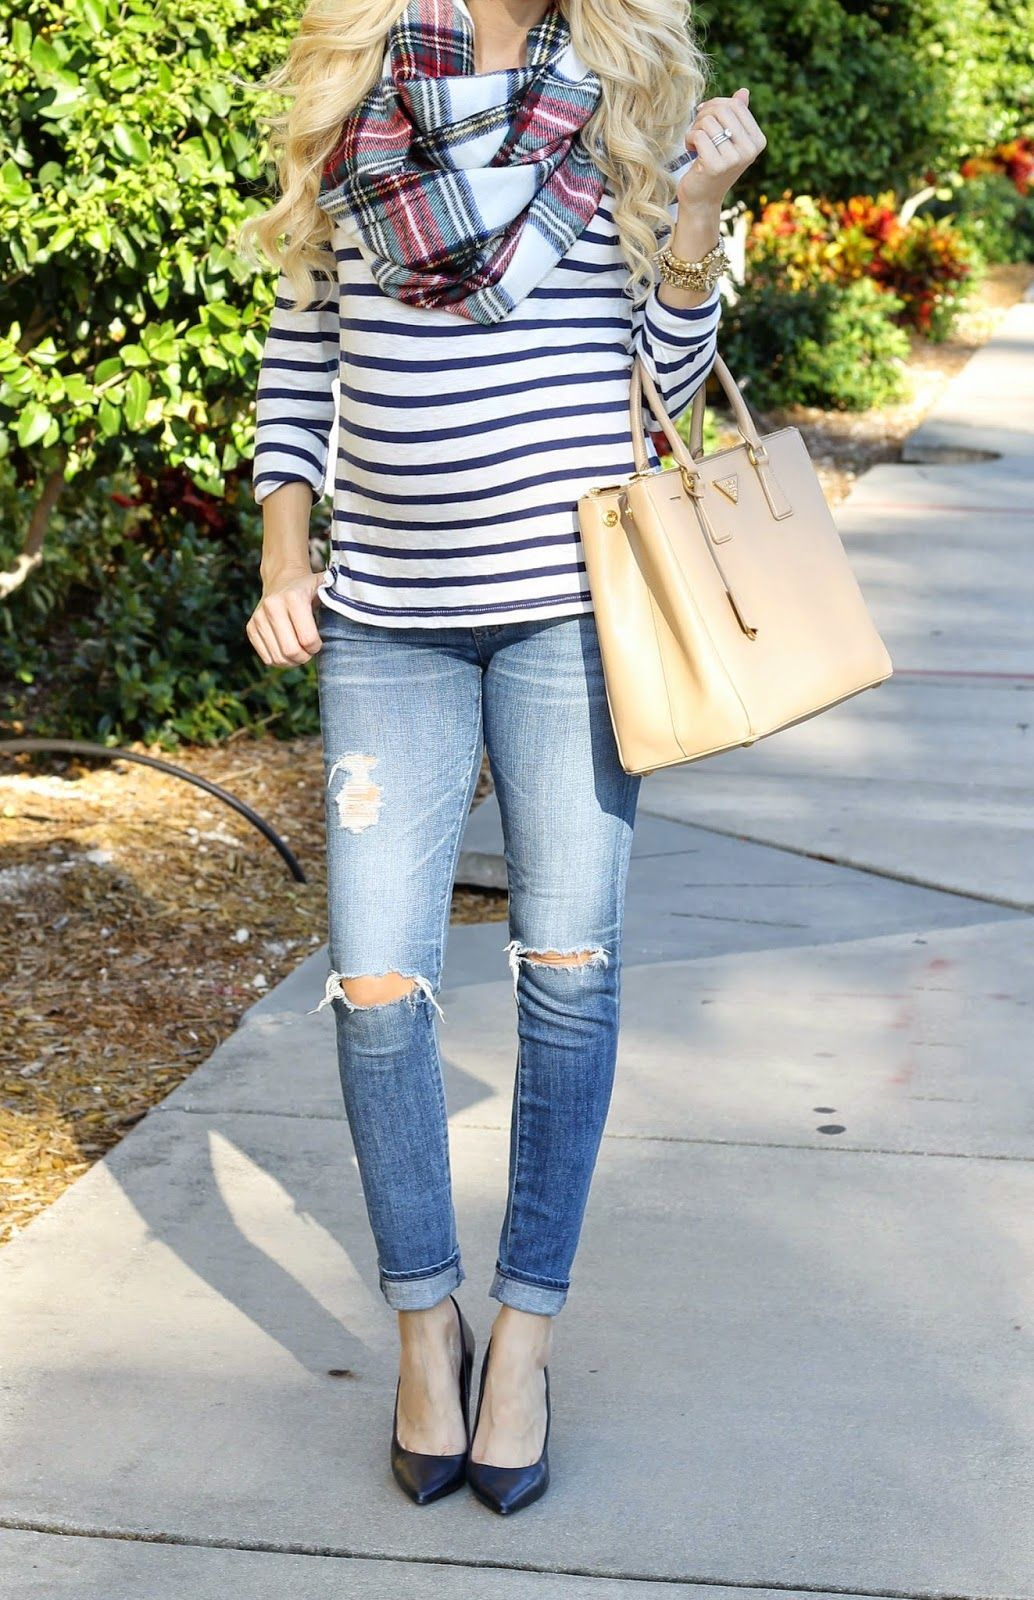 A Spoonful of Style: Plaid And Stripes